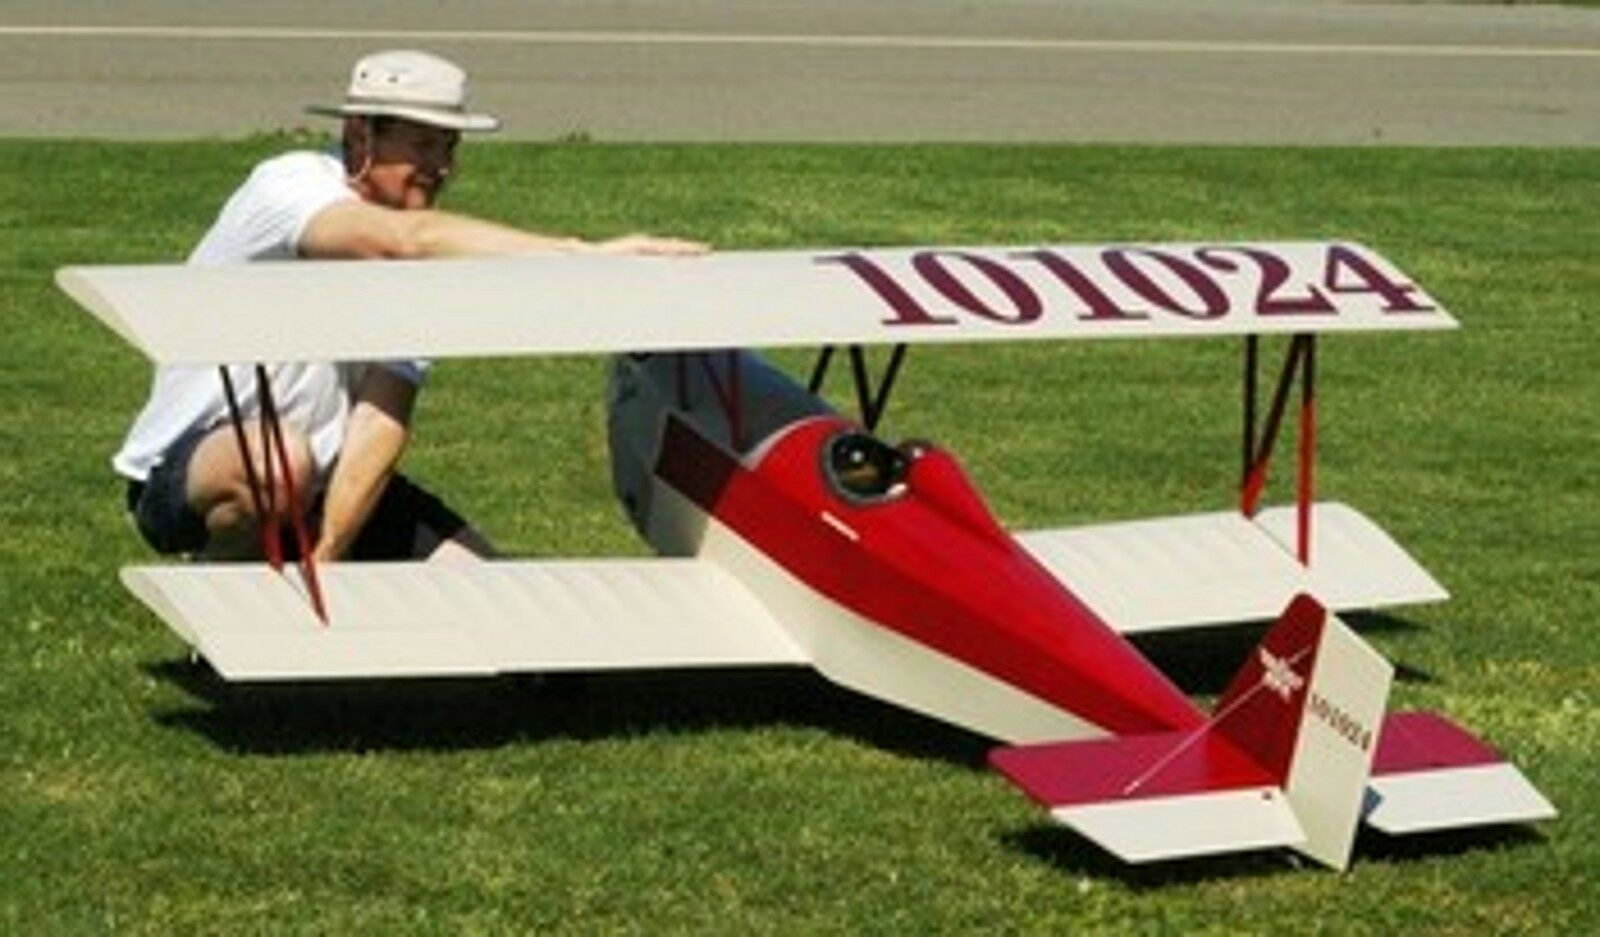 huge rc airplanes with 1 3 Scale Nosen Gere Sport 8 Foot 321877111582 on Postings as well Watch likewise How Boeing And Airbus Use Russias Expertise To Develop Their Airplanes 827604 moreover En further Watch.